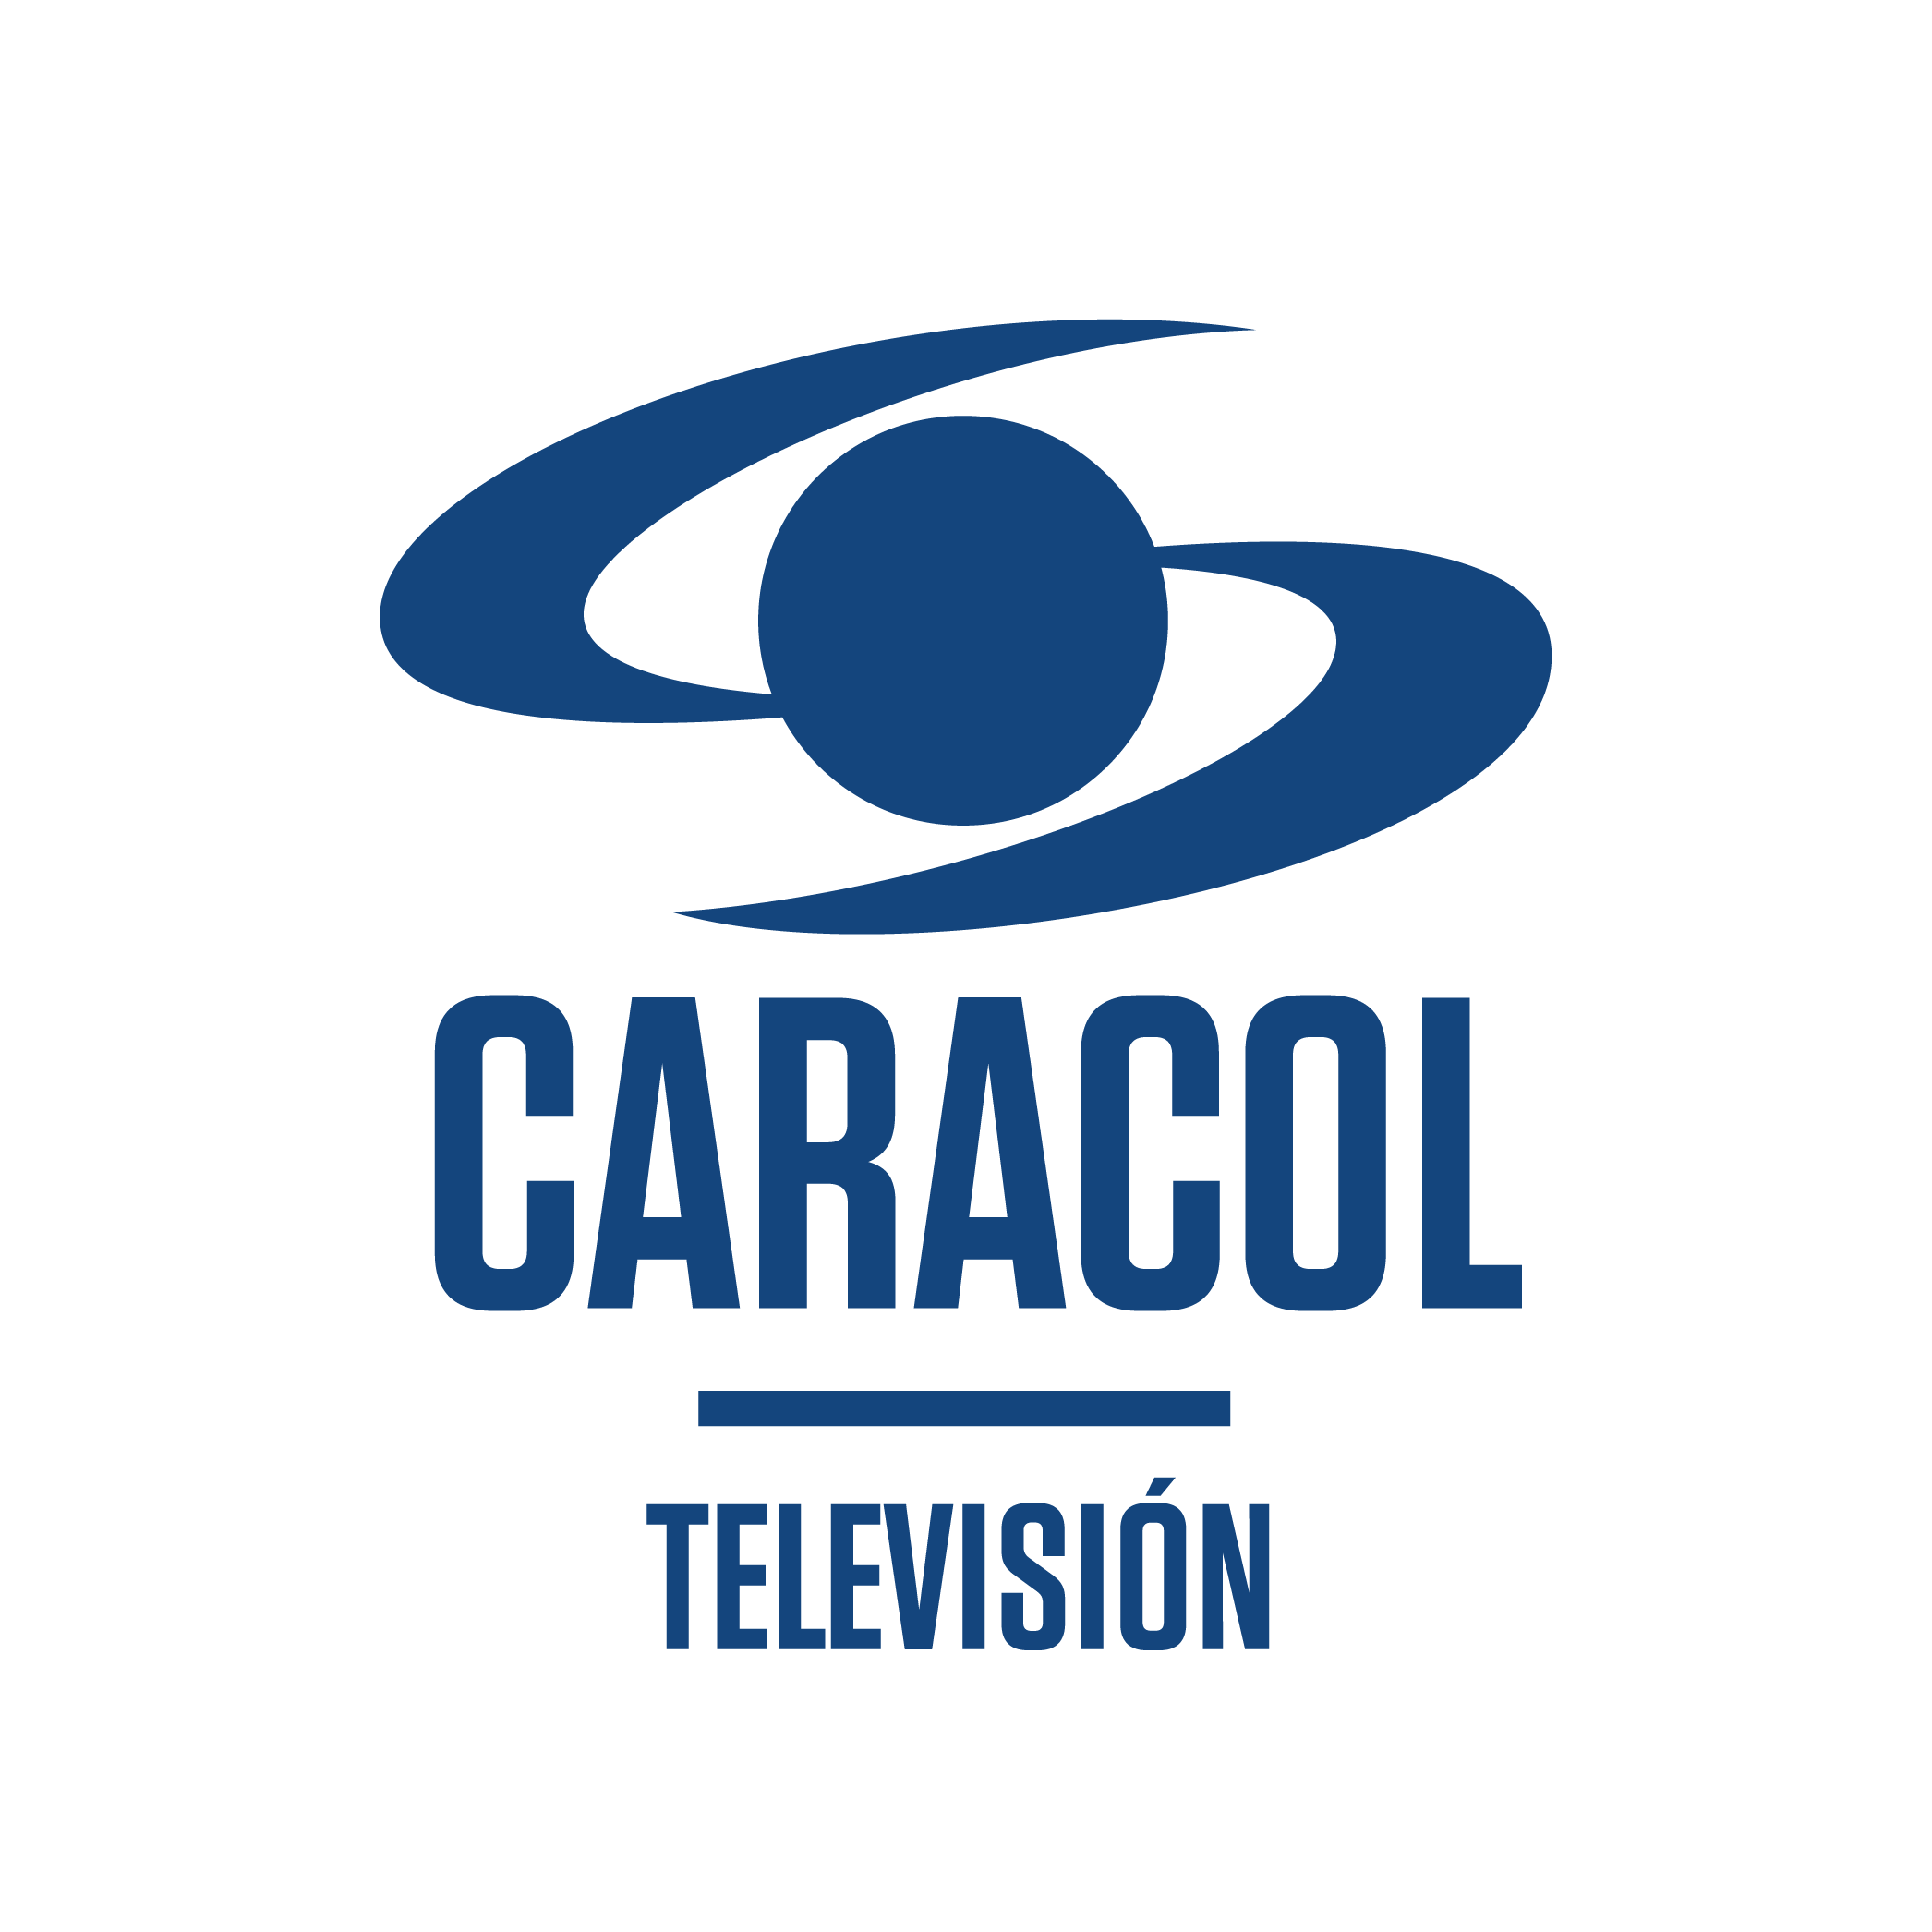 Caracol Television GIFs - Find & Share on GIPHY